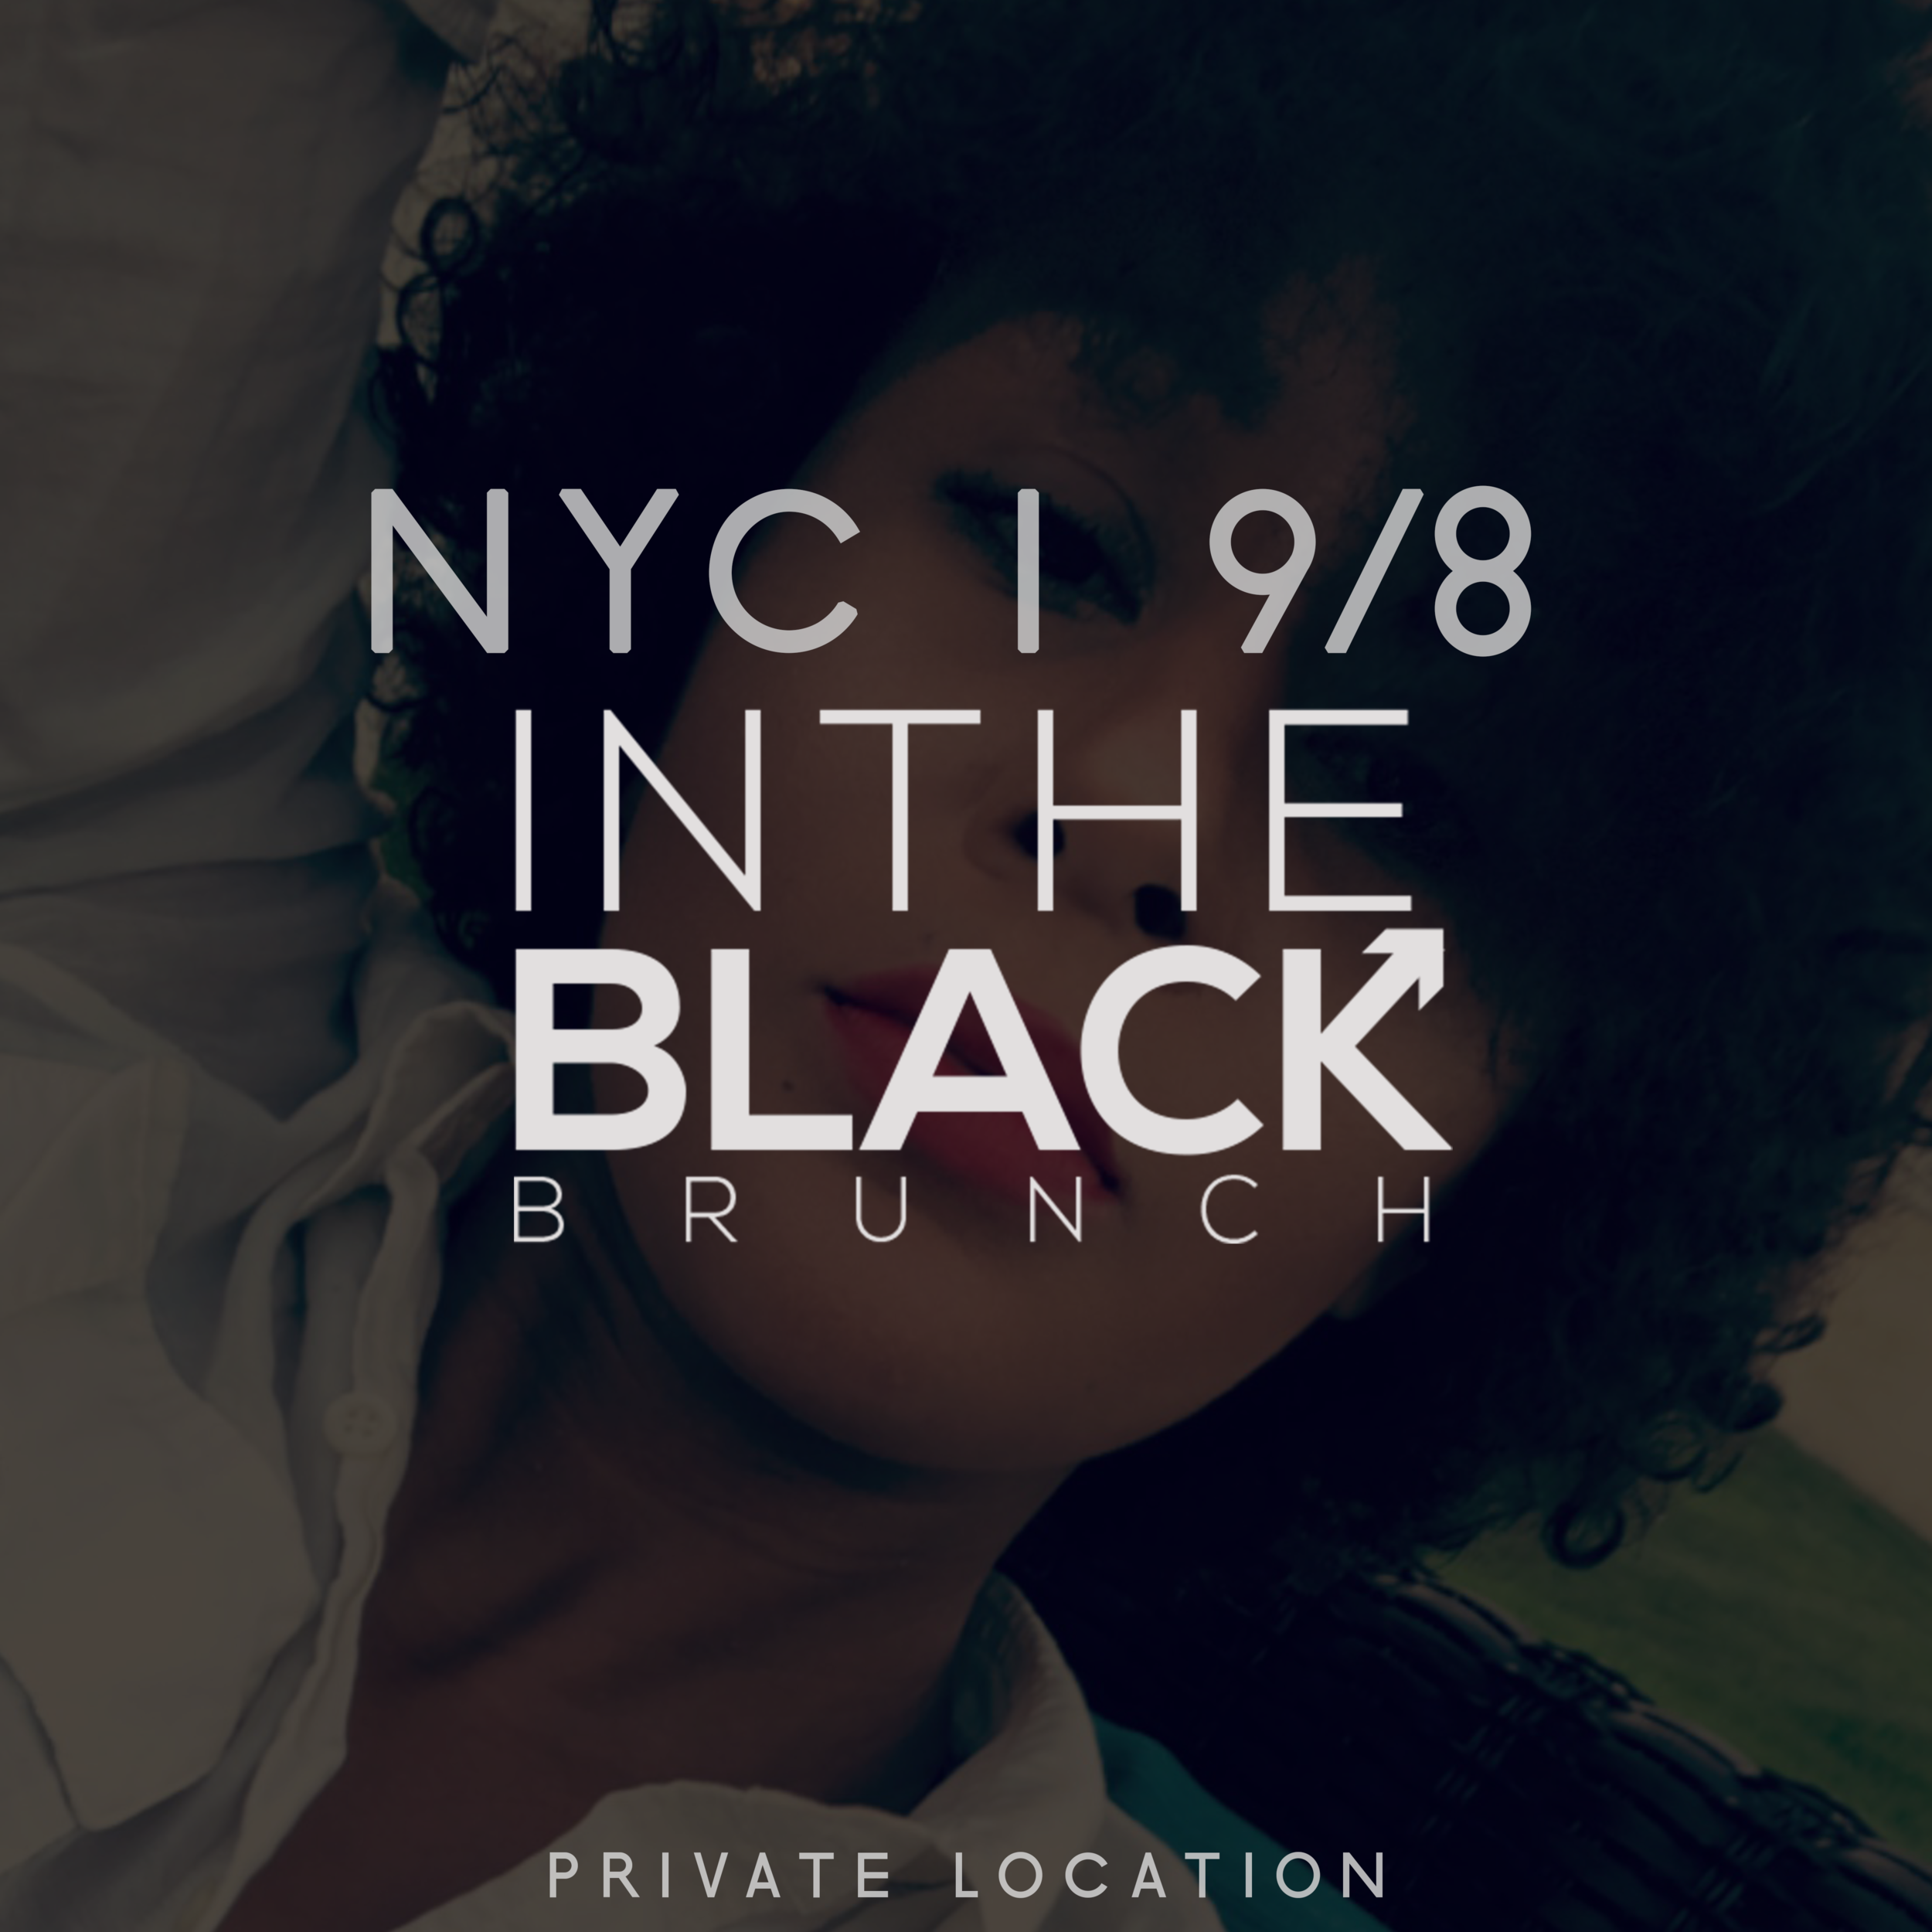 In The Black Brunch - In the Black is an event series hosted by Angela Benton for the savvy who know settling isn't an option.Start your Saturday kicking it w/ Angela and her specially invited guests over food and craft cocktails. But, this isn't your average brunch tho... get schooled on business while you network with like minds and get elevated on how to have a profitable business life andpersonal life. Leave In the Blacka tad bit tipsy and also a tad bit smarter.Event FeaturesThe Pitch:Five people will get 2 mins to pitch their business, idea, or concept and get tangible feedback from Angela and her Special Guests.Limited Availability.Meet + Greet:Meet with Angela 1-on-1 before the festivities begin and get a signed copy of her book REVIVAL.Limited Availability.LocationsWashington, DC (Sold Out)NYC